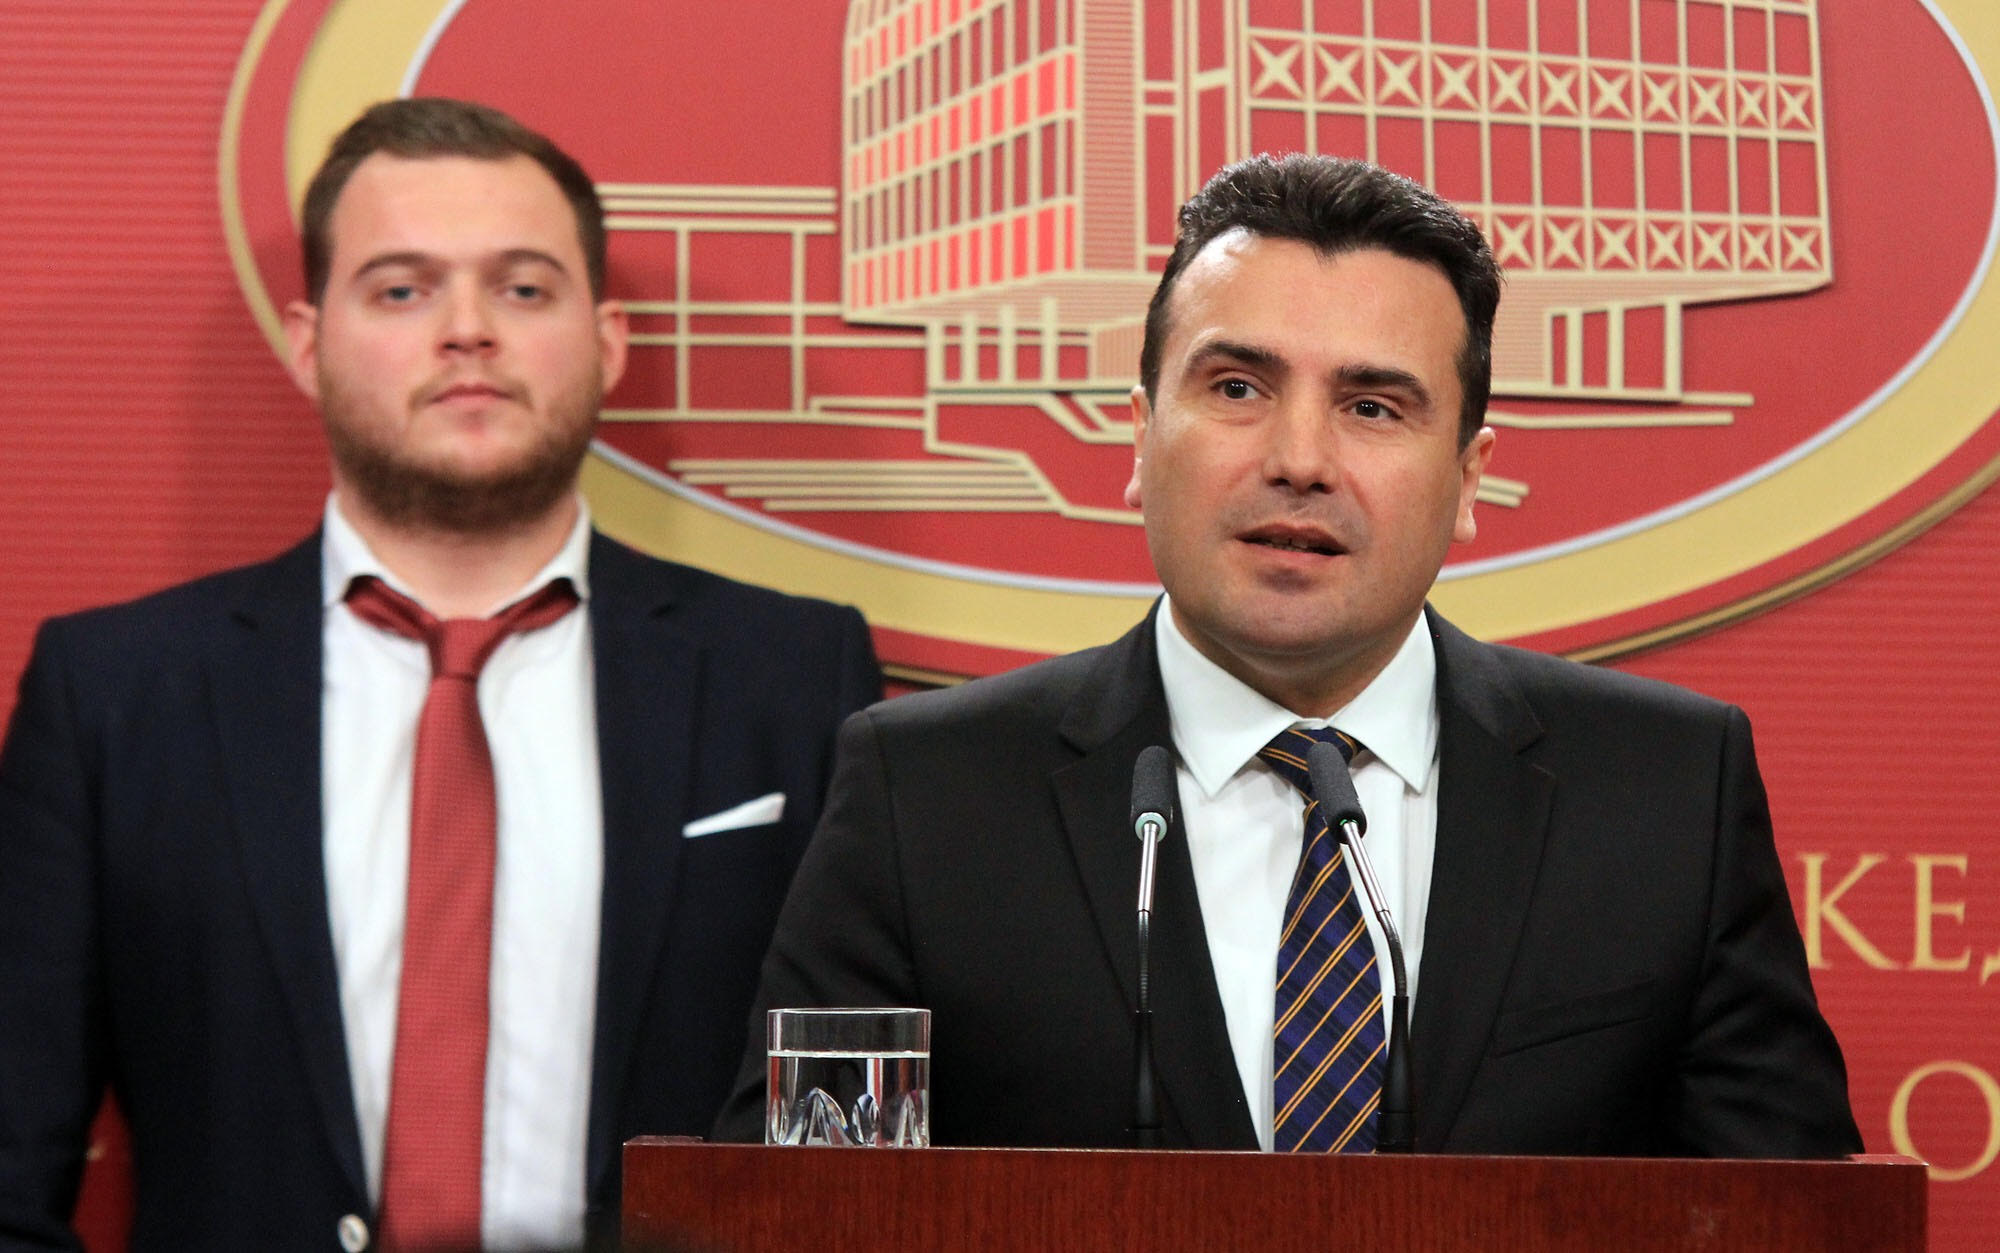 PM Zaev announced a fresh round of talks on the name dispute next week